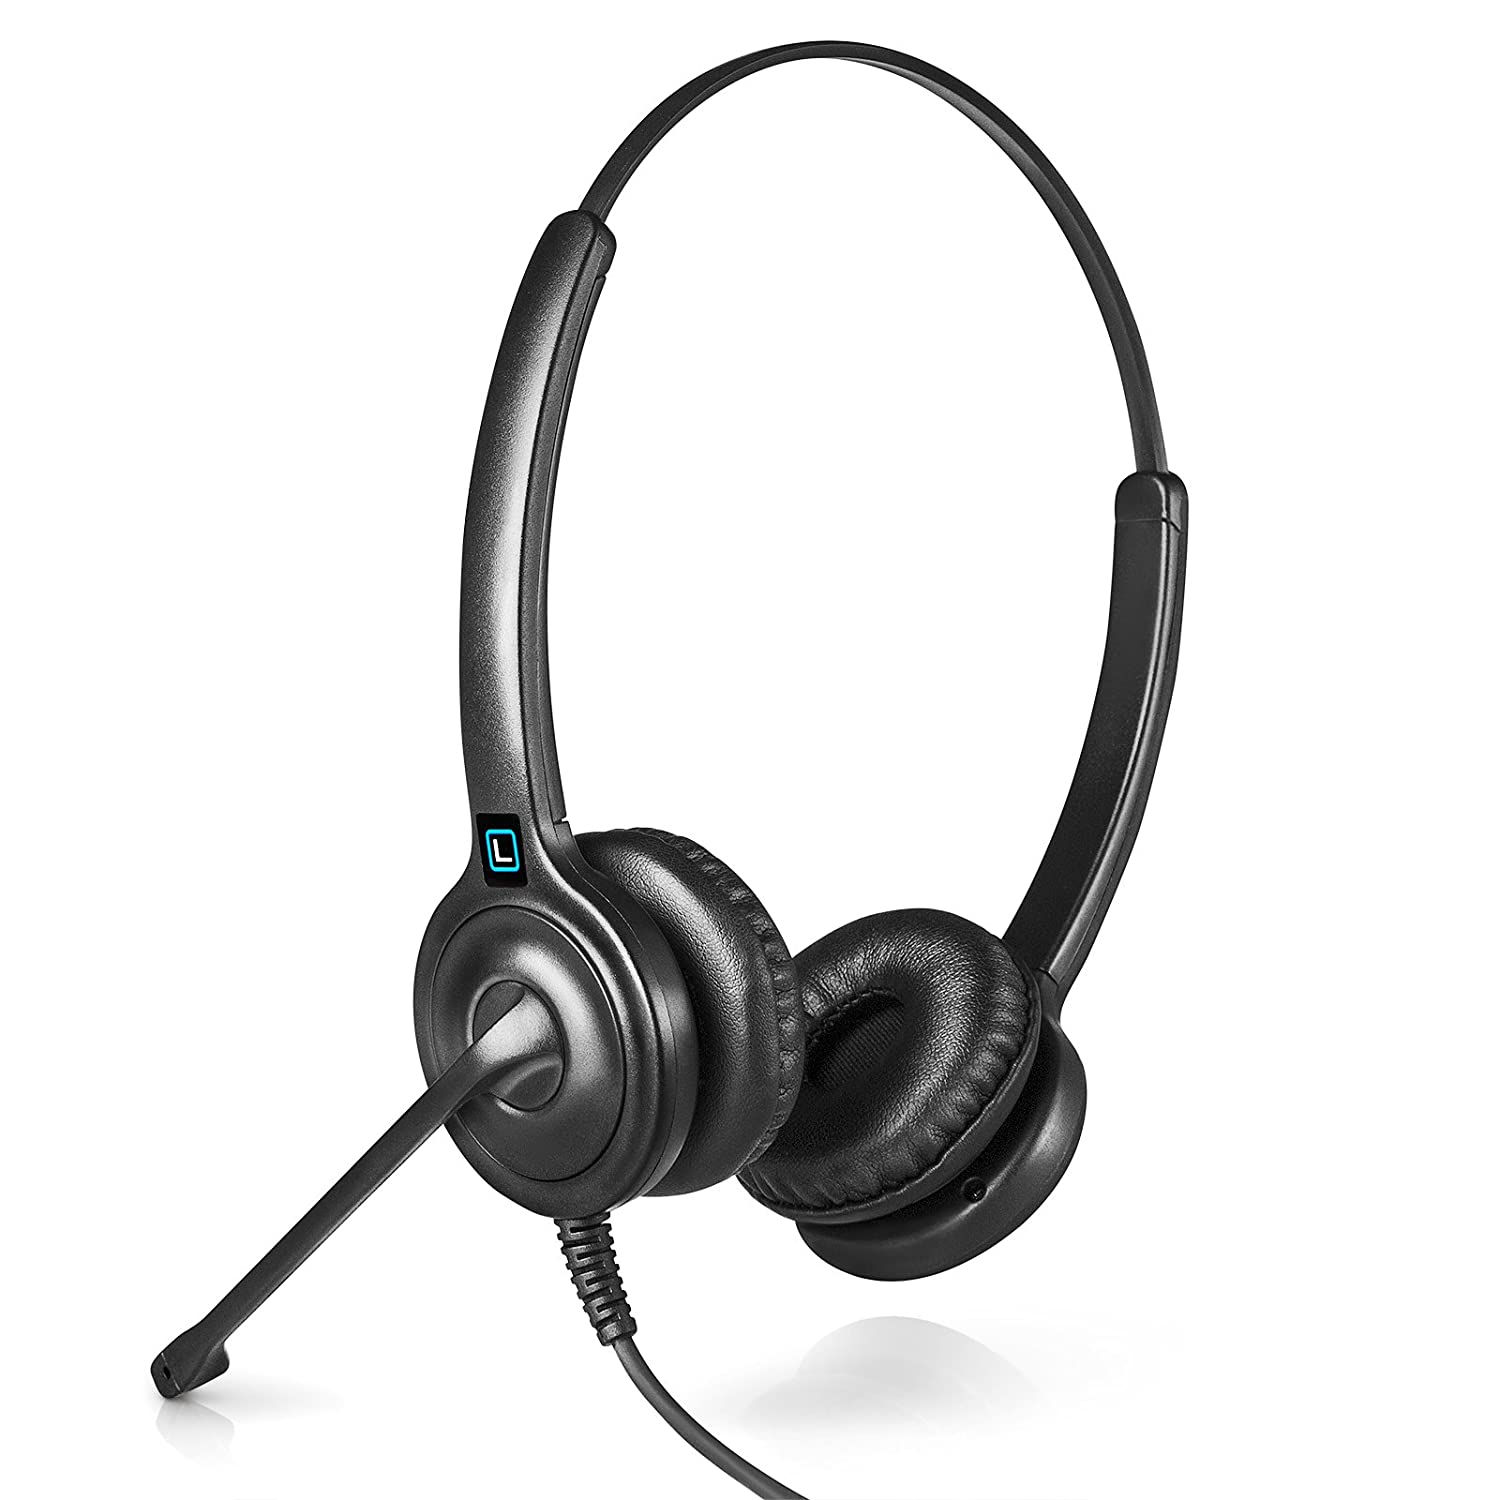 Includes a 5-Year Warranty Also works with Plantronics M22 Amp and Headset Accessories Works with 98/% of Corded Office Phones Leitner LH245 Dual-Ear Corded Office Telephone Headset with Cord